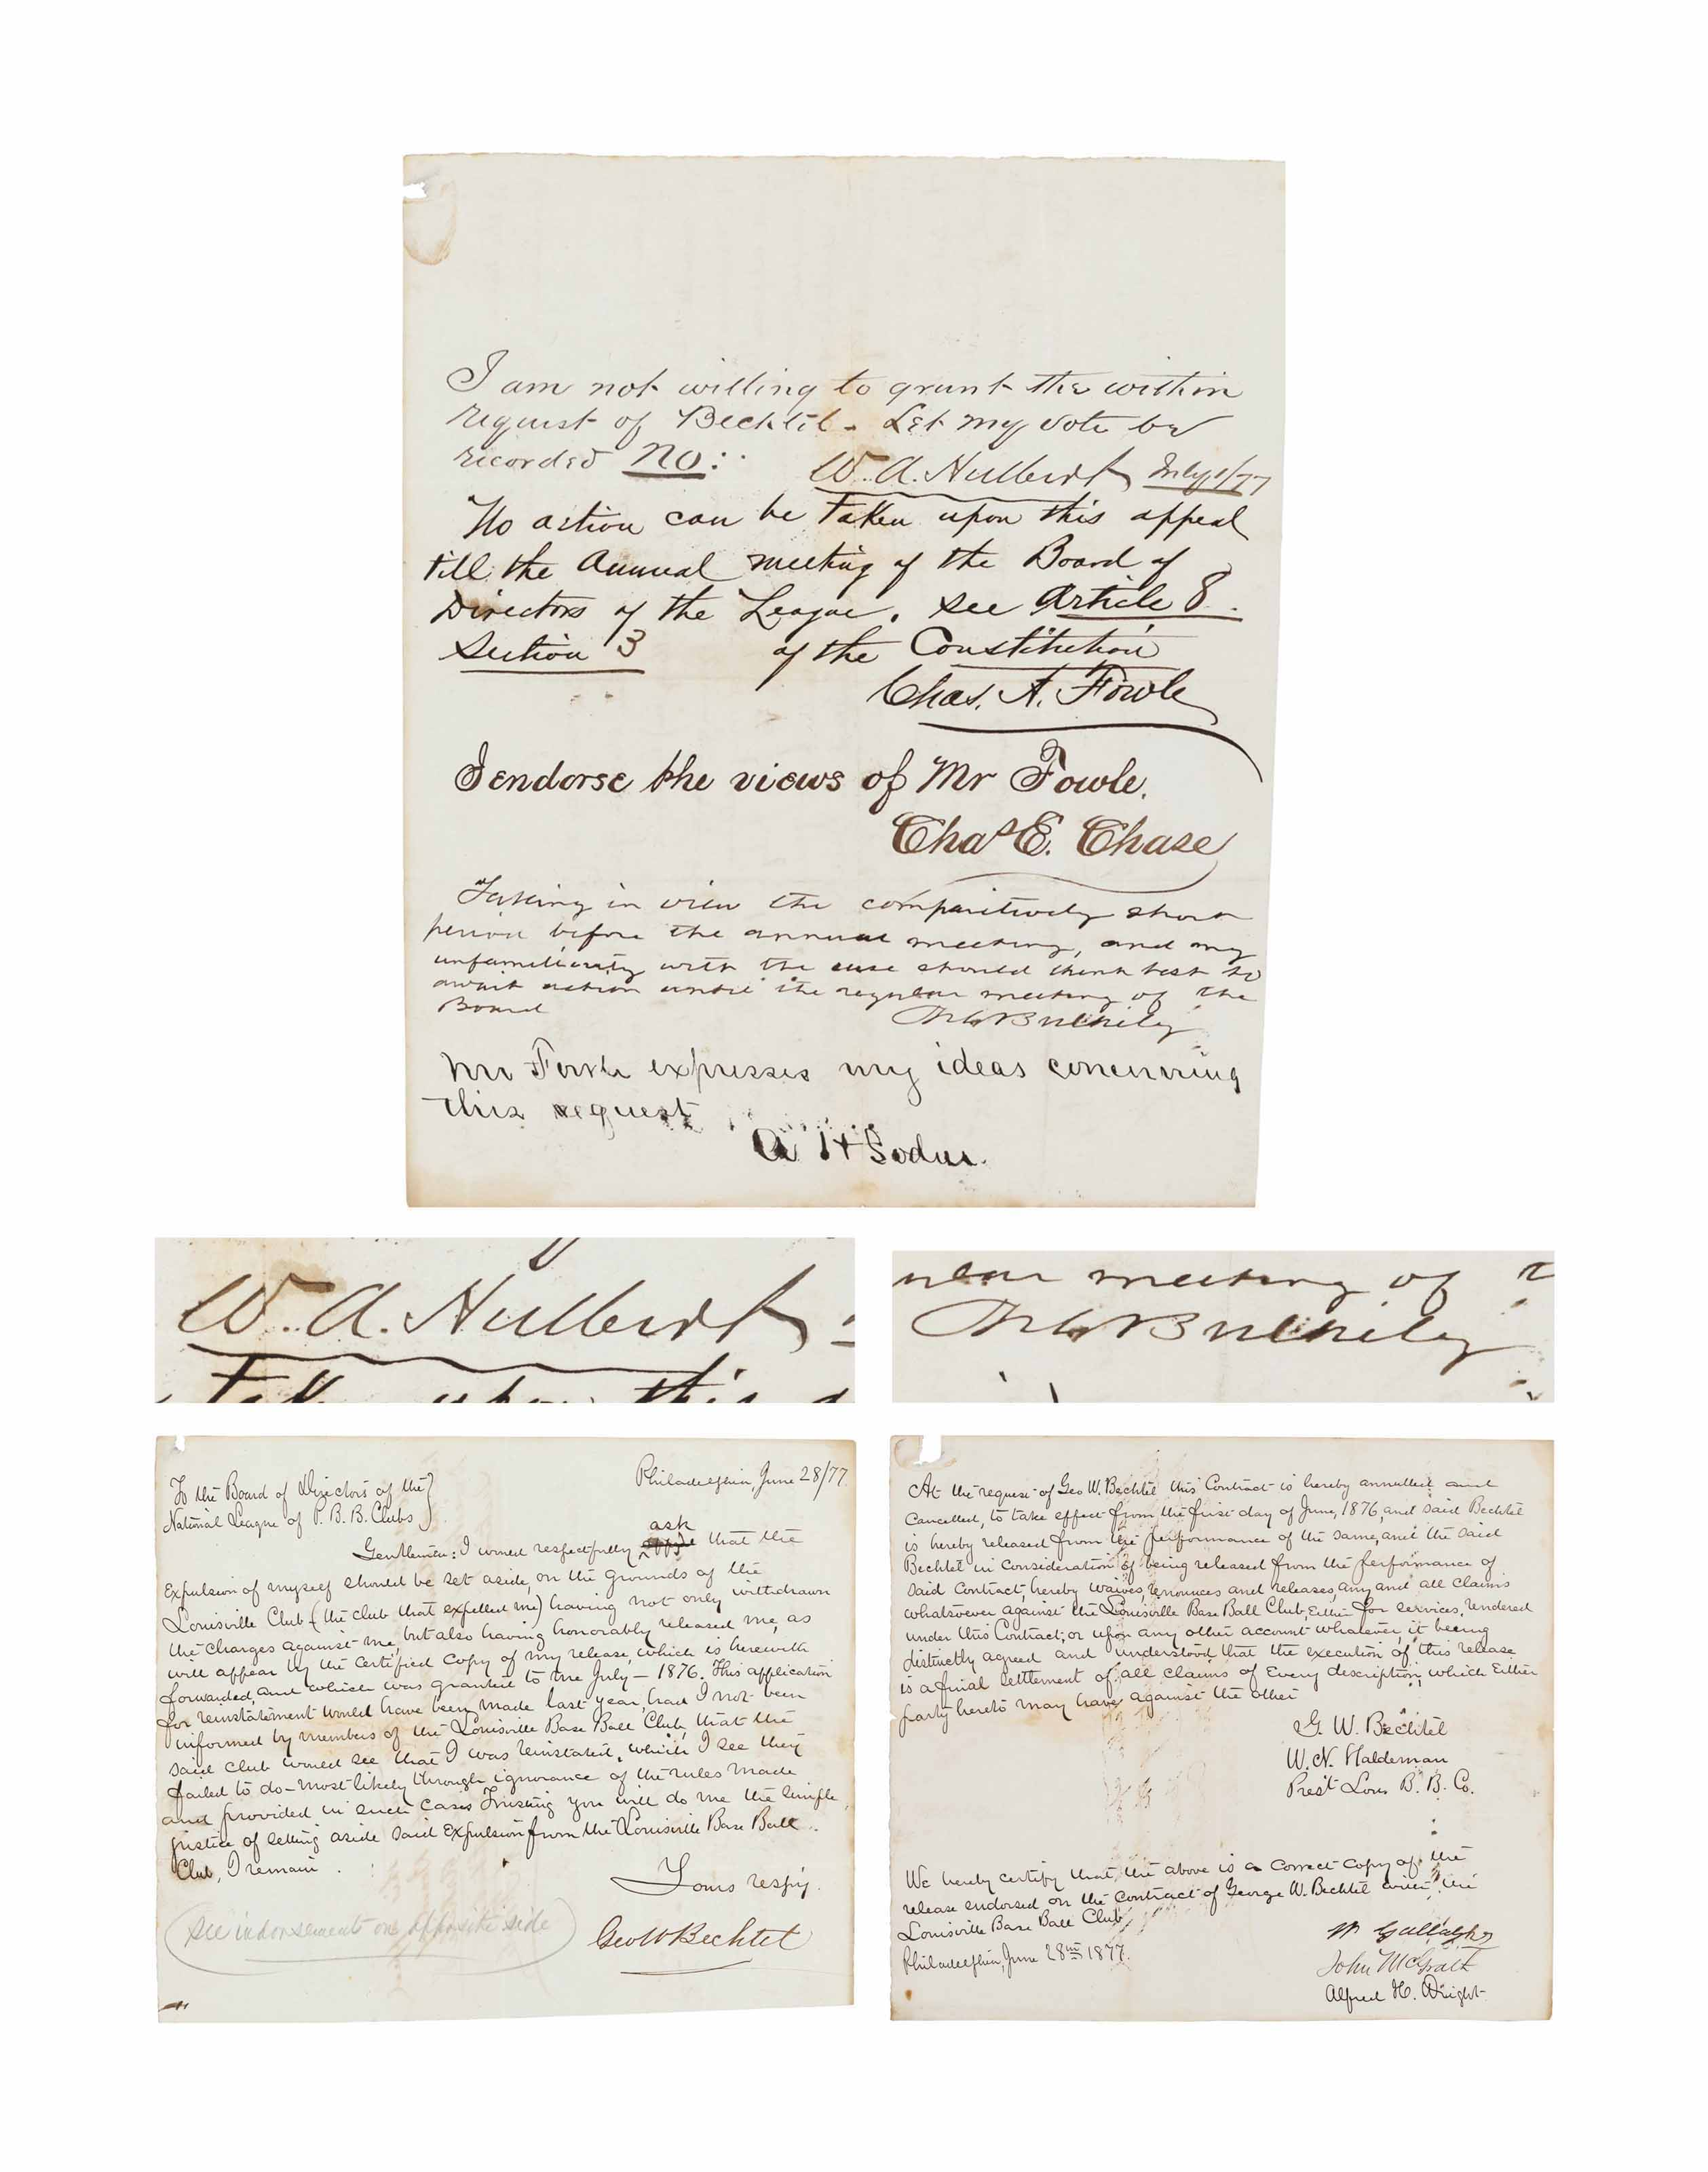 DOCUMENTS RELATED TO THE EXPUL